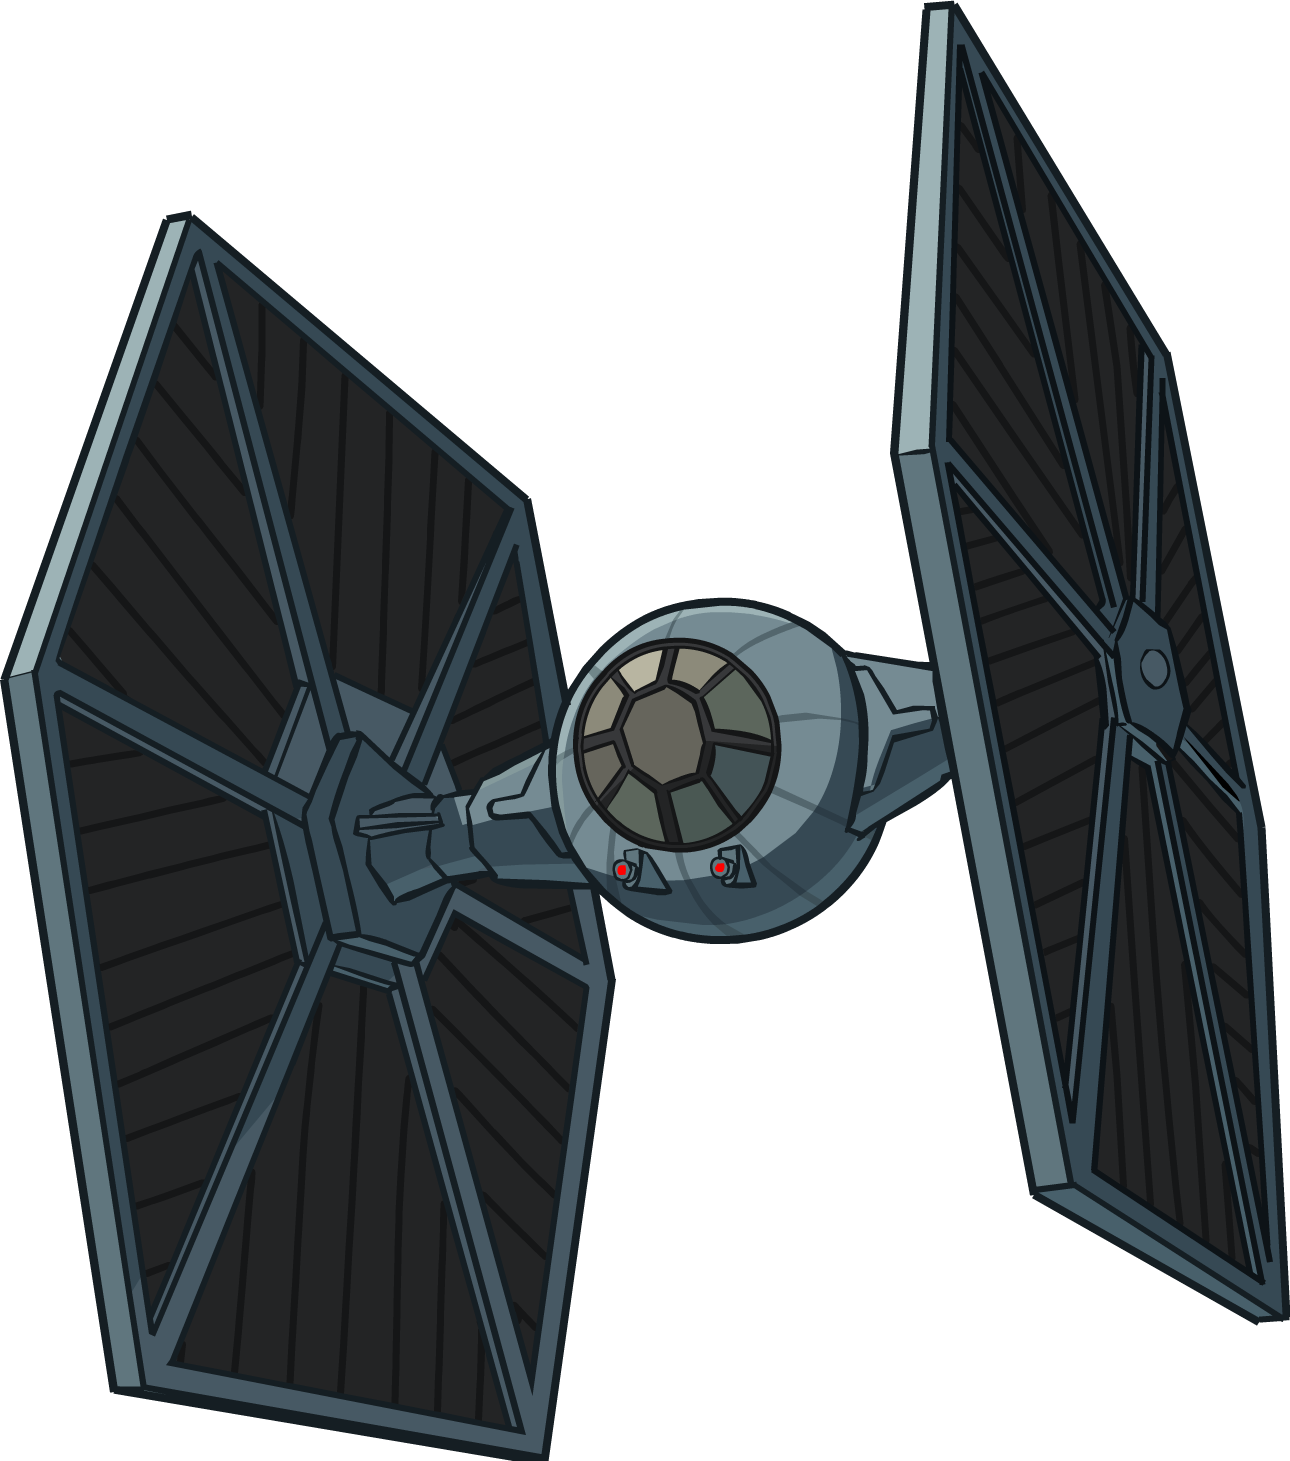 http://vignette3.wikia.nocookie.net/clubpenguin/images/3/3e/TIE_Fighter_CPT_issue_482.png/revision/latest?cb=20150117172430